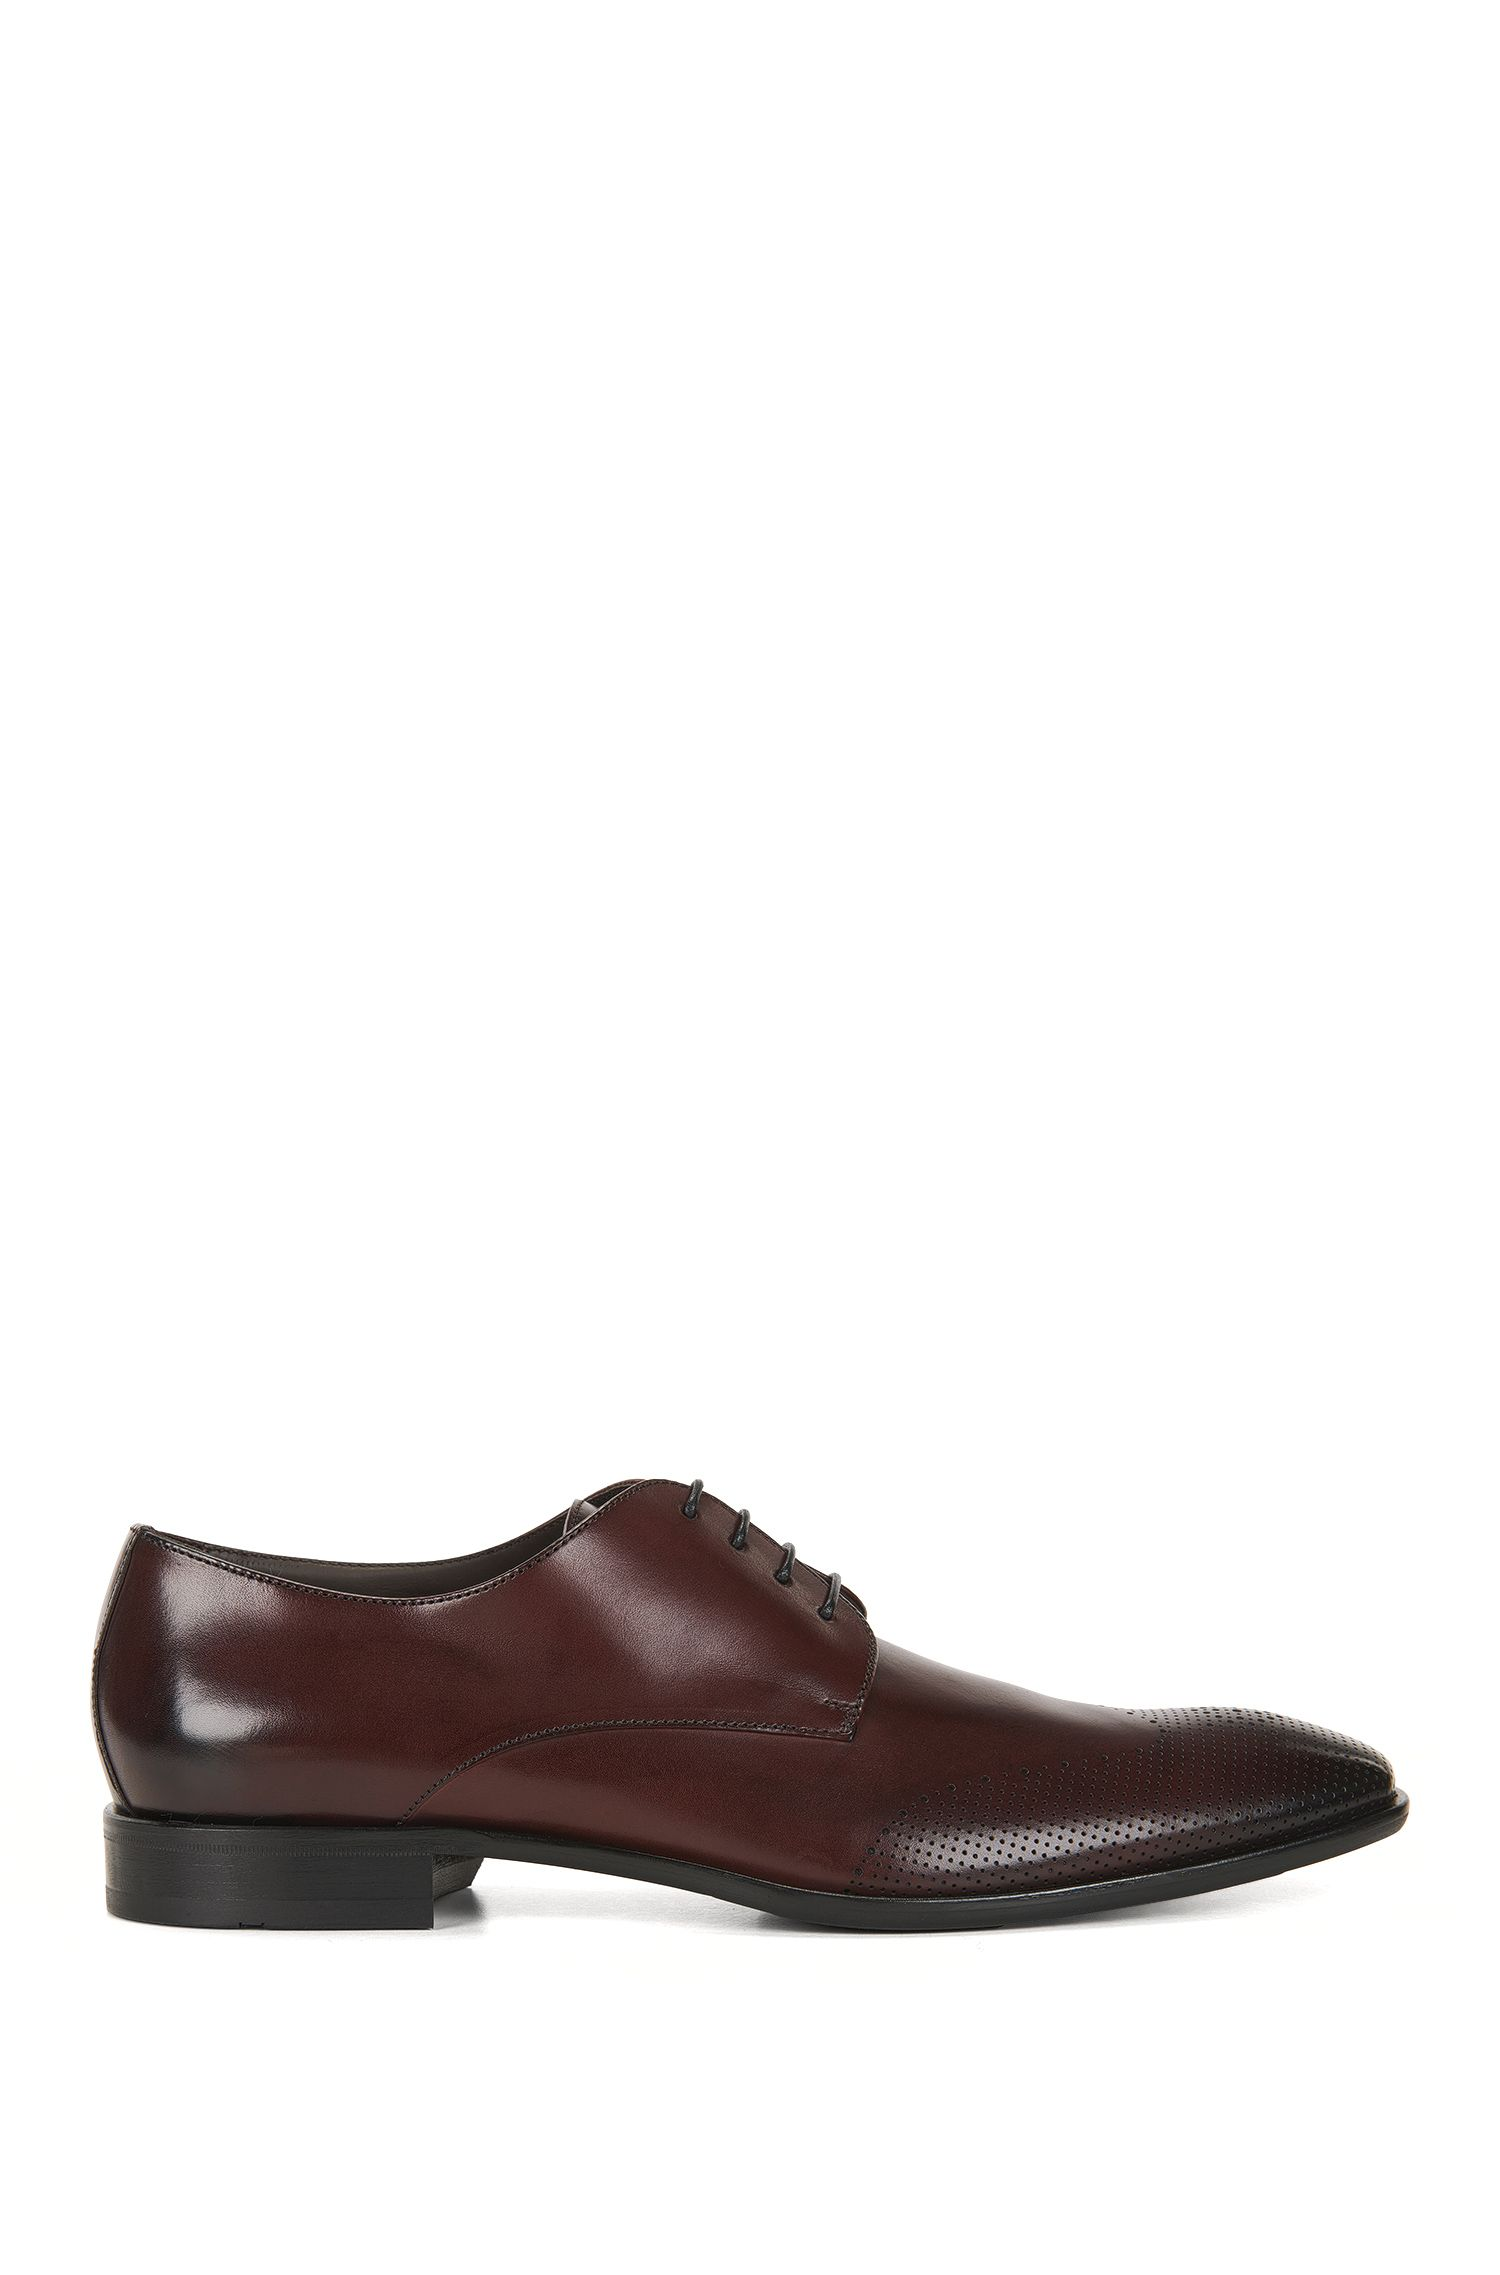 Leather Derby shoes in burnished leather